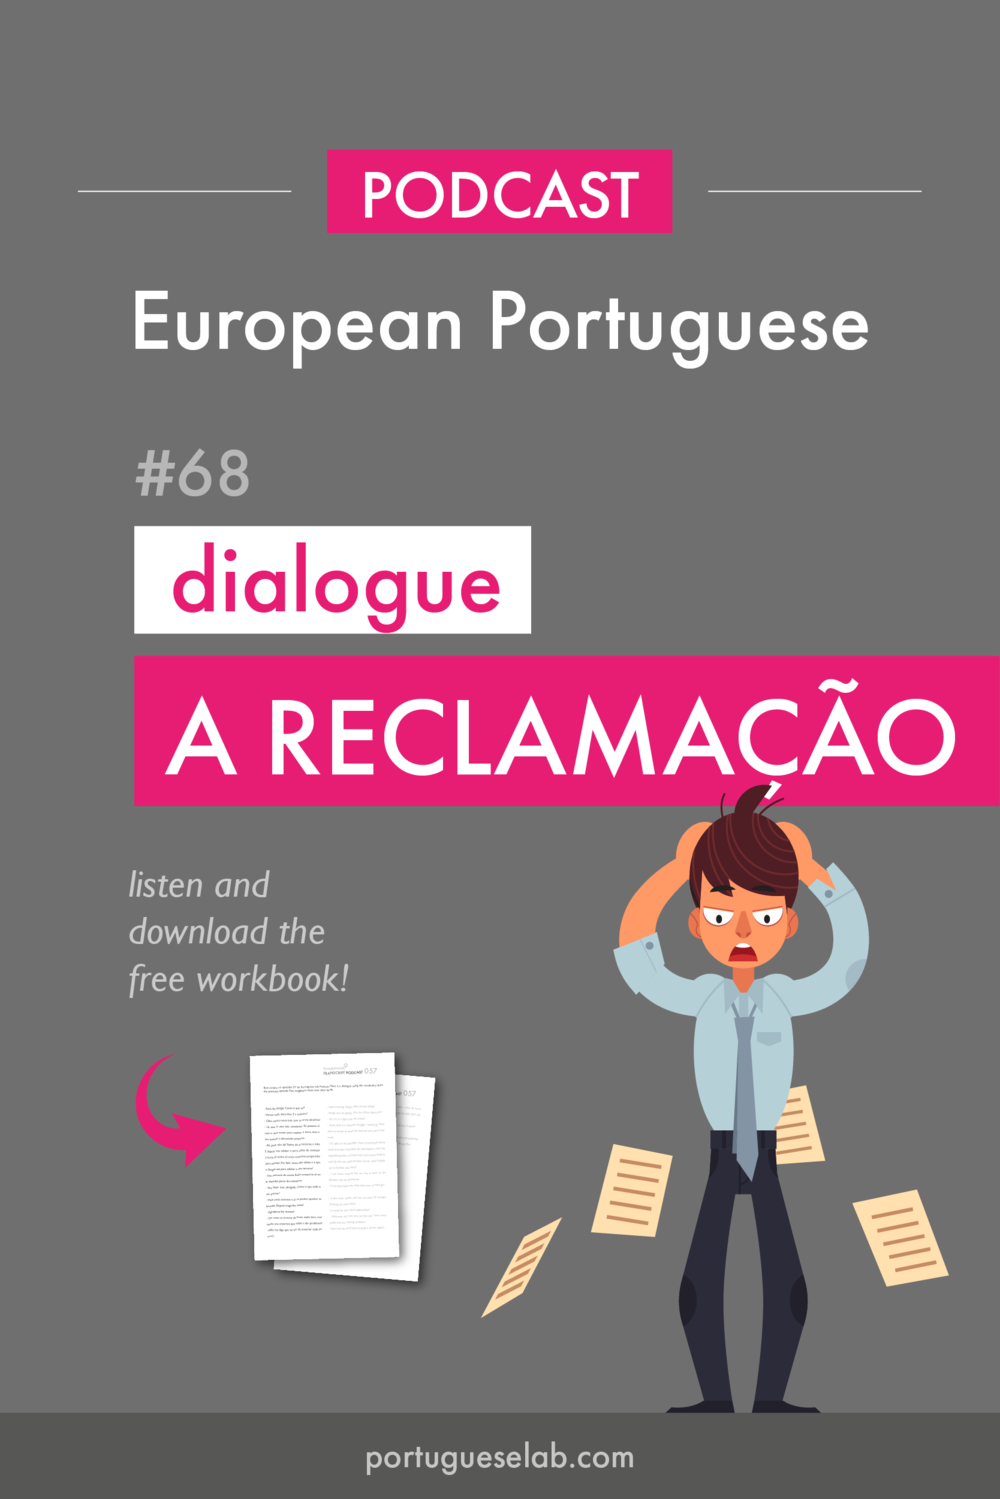 Portuguese Lab Podcast - European Portuguese - 68 - Advanced - Dialogue - A reclamacao.png